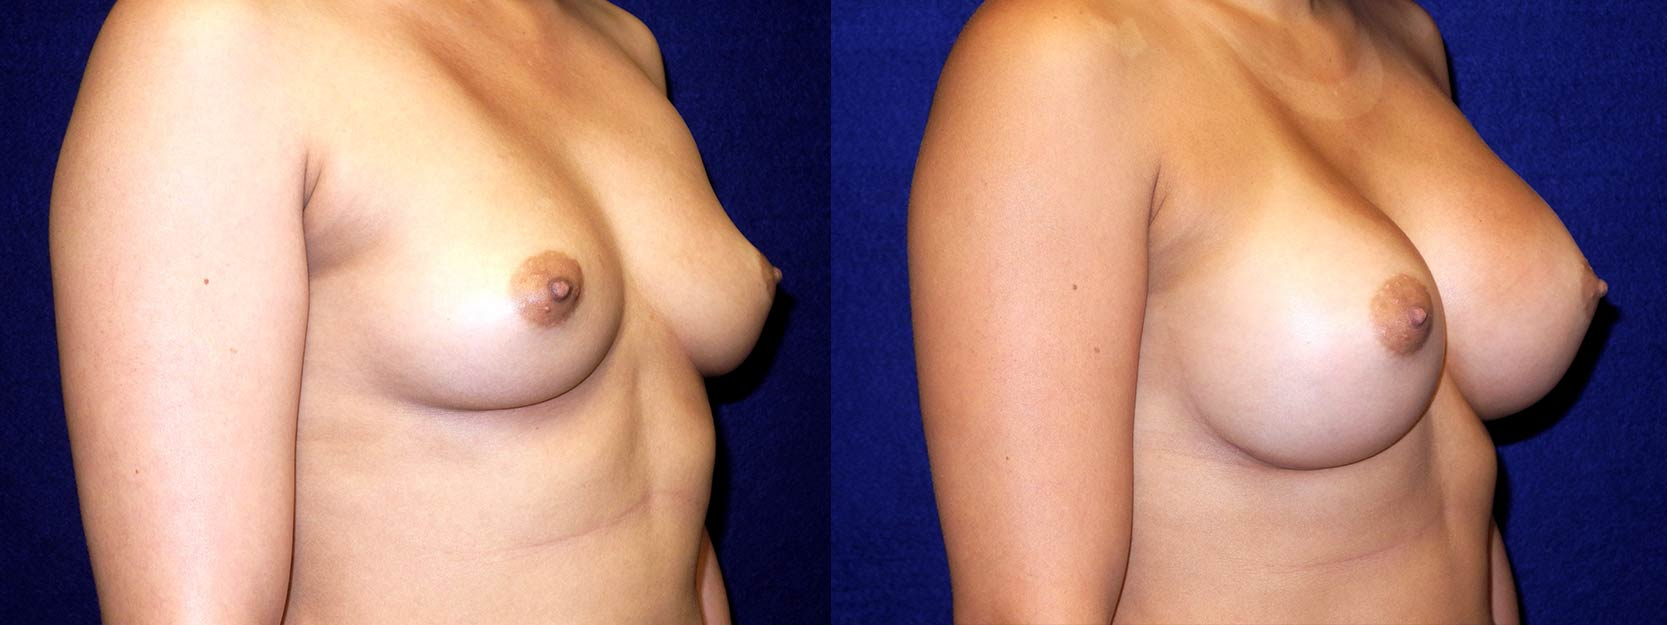 Right 3/4 View - Breast Augmentation - Silicone Implants